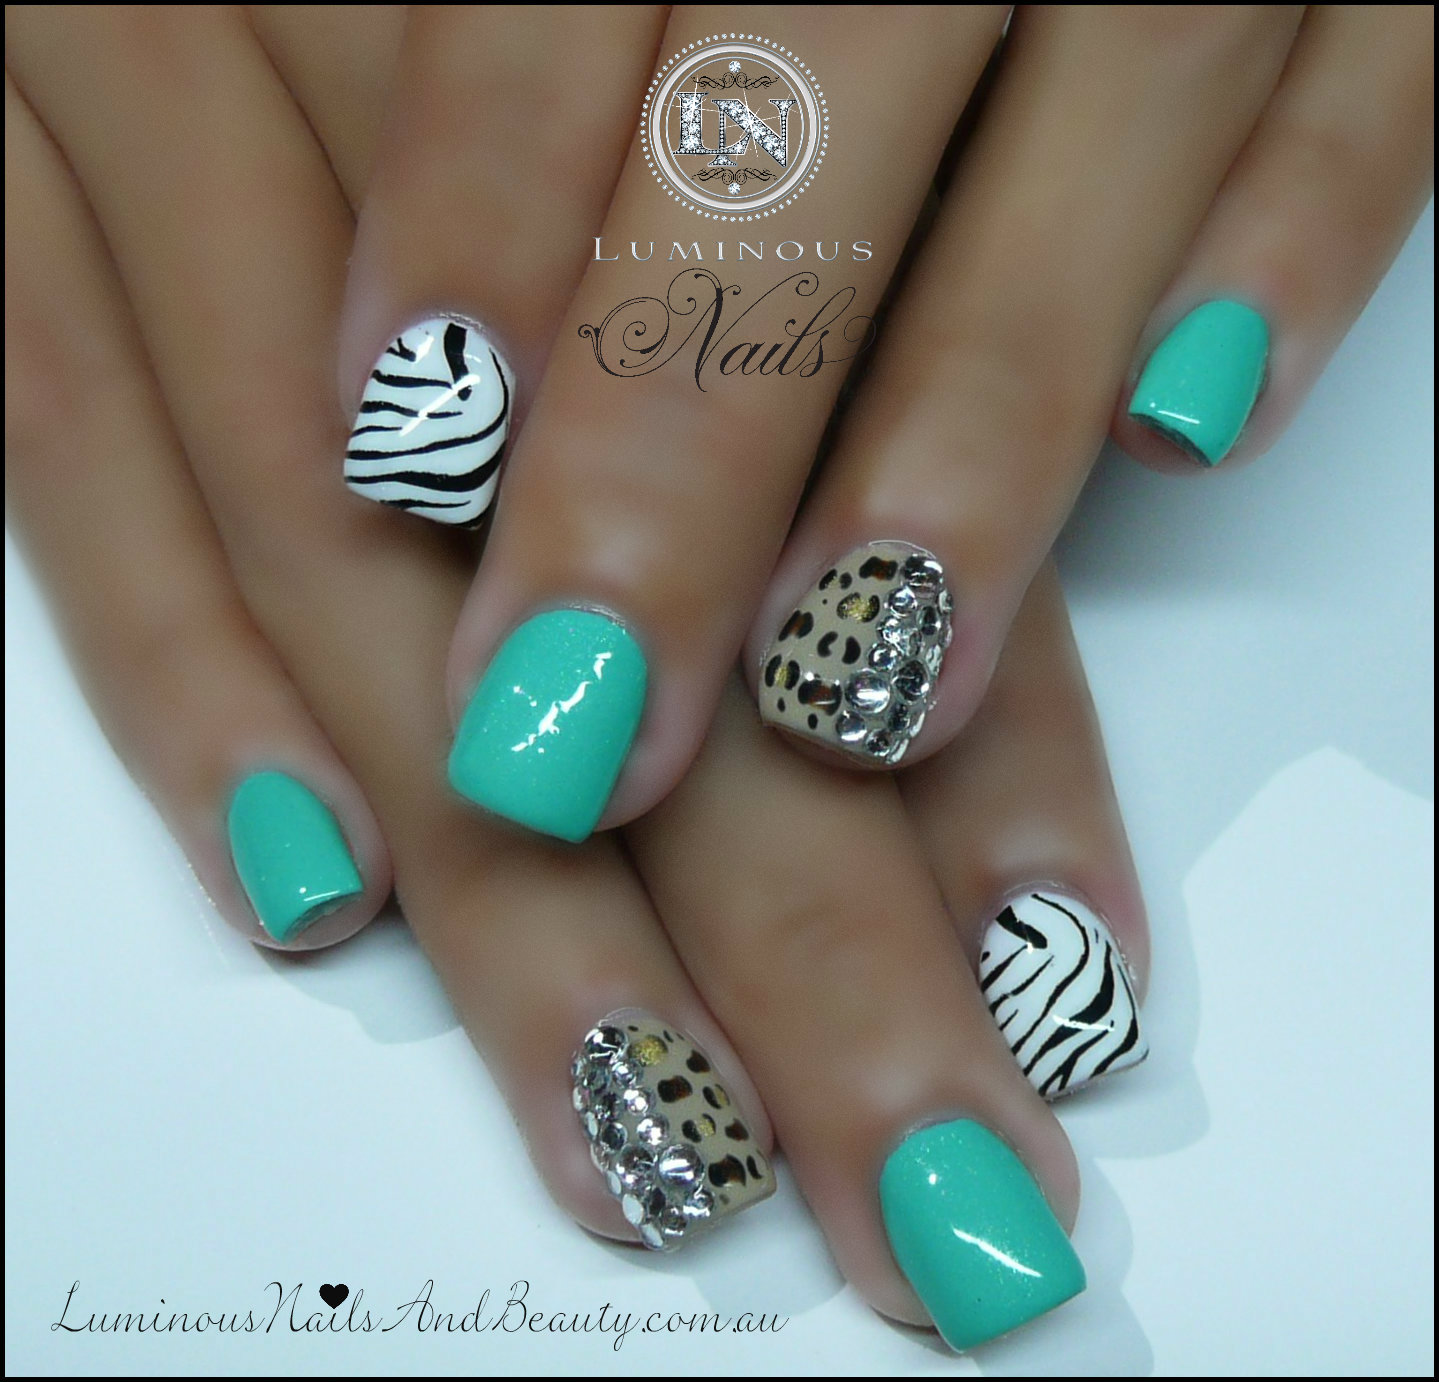 Luminous Nails and Beauty, Gold Coast Queensland. Acrylic Nails Gel Nails,  Sculptured Acrylic - 19 Amazing Gel Nail Designs